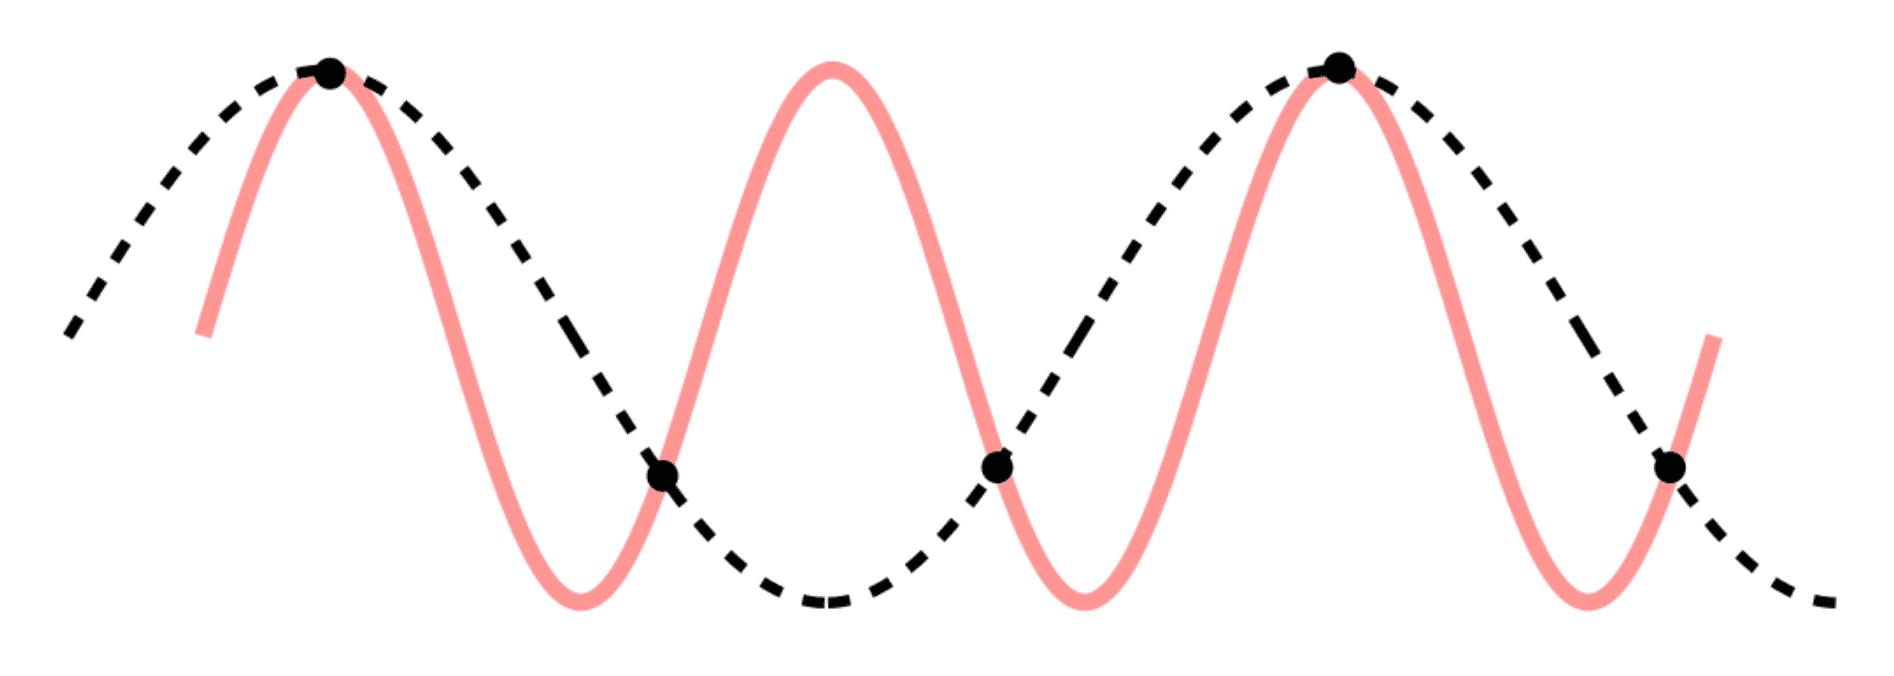 Demonstration of a false signal (alias) in black, caused by sampling too infrequently compared to the original signal.